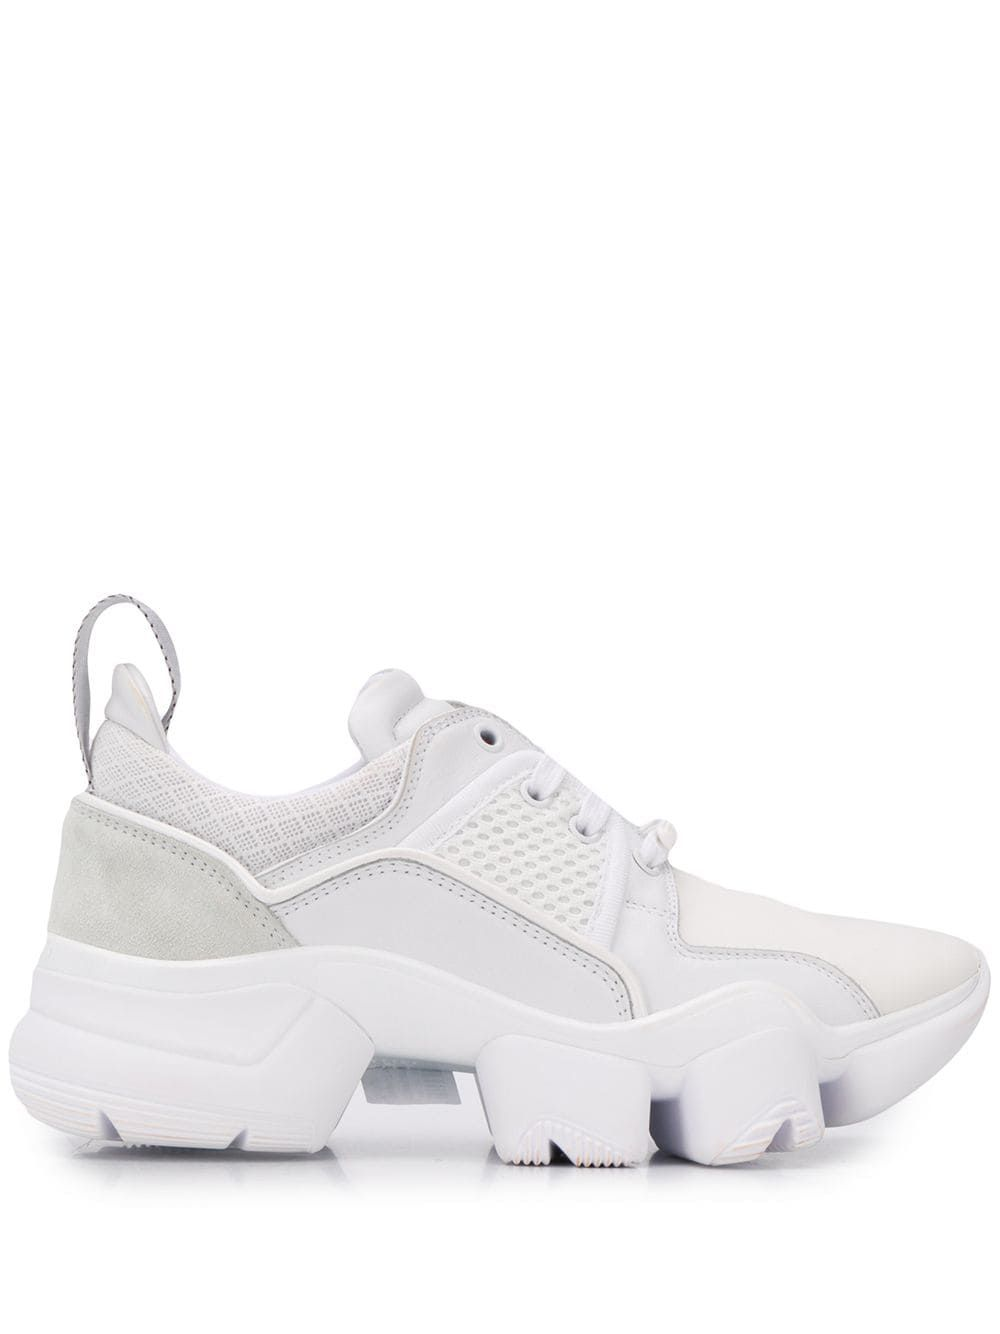 Givenchy Jaw Chunky Sneakers - Farfetch